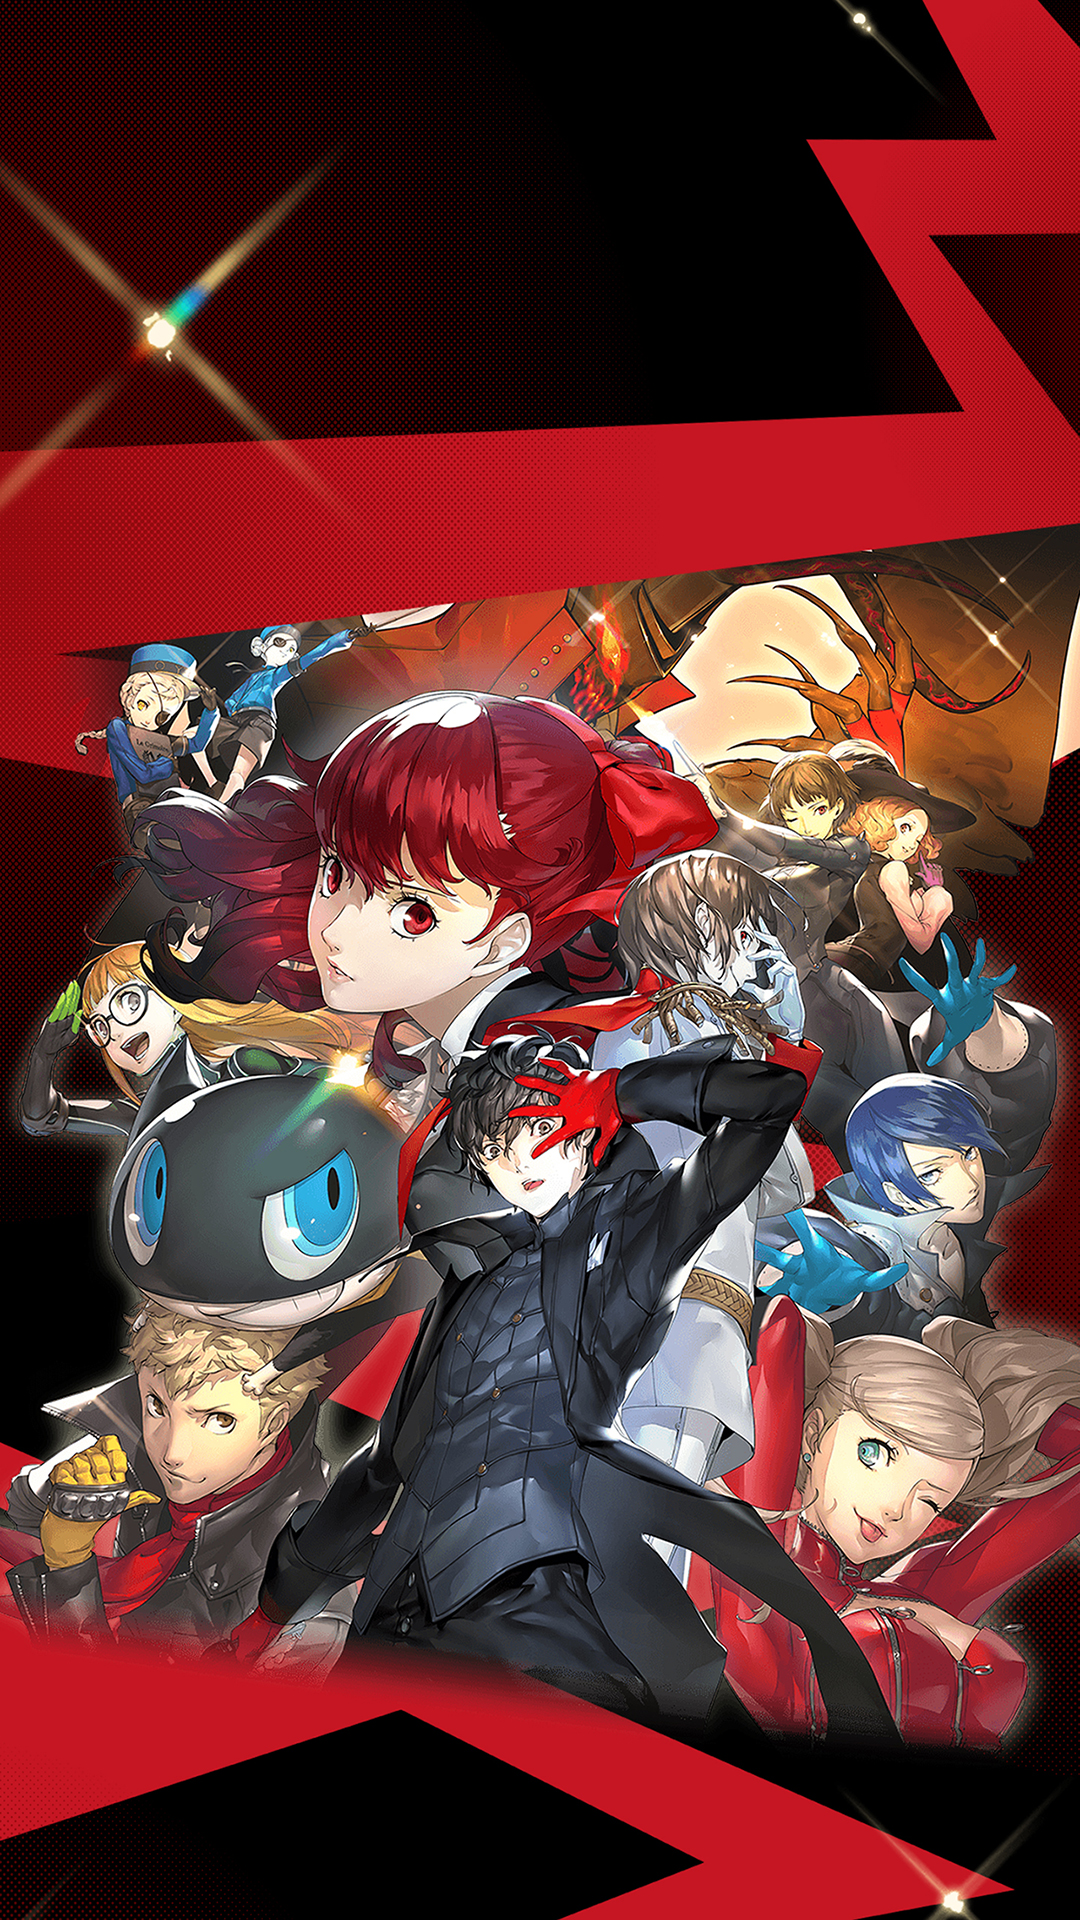 Persona 5 Royal Artwork Wallpaper   Cat with Monocle